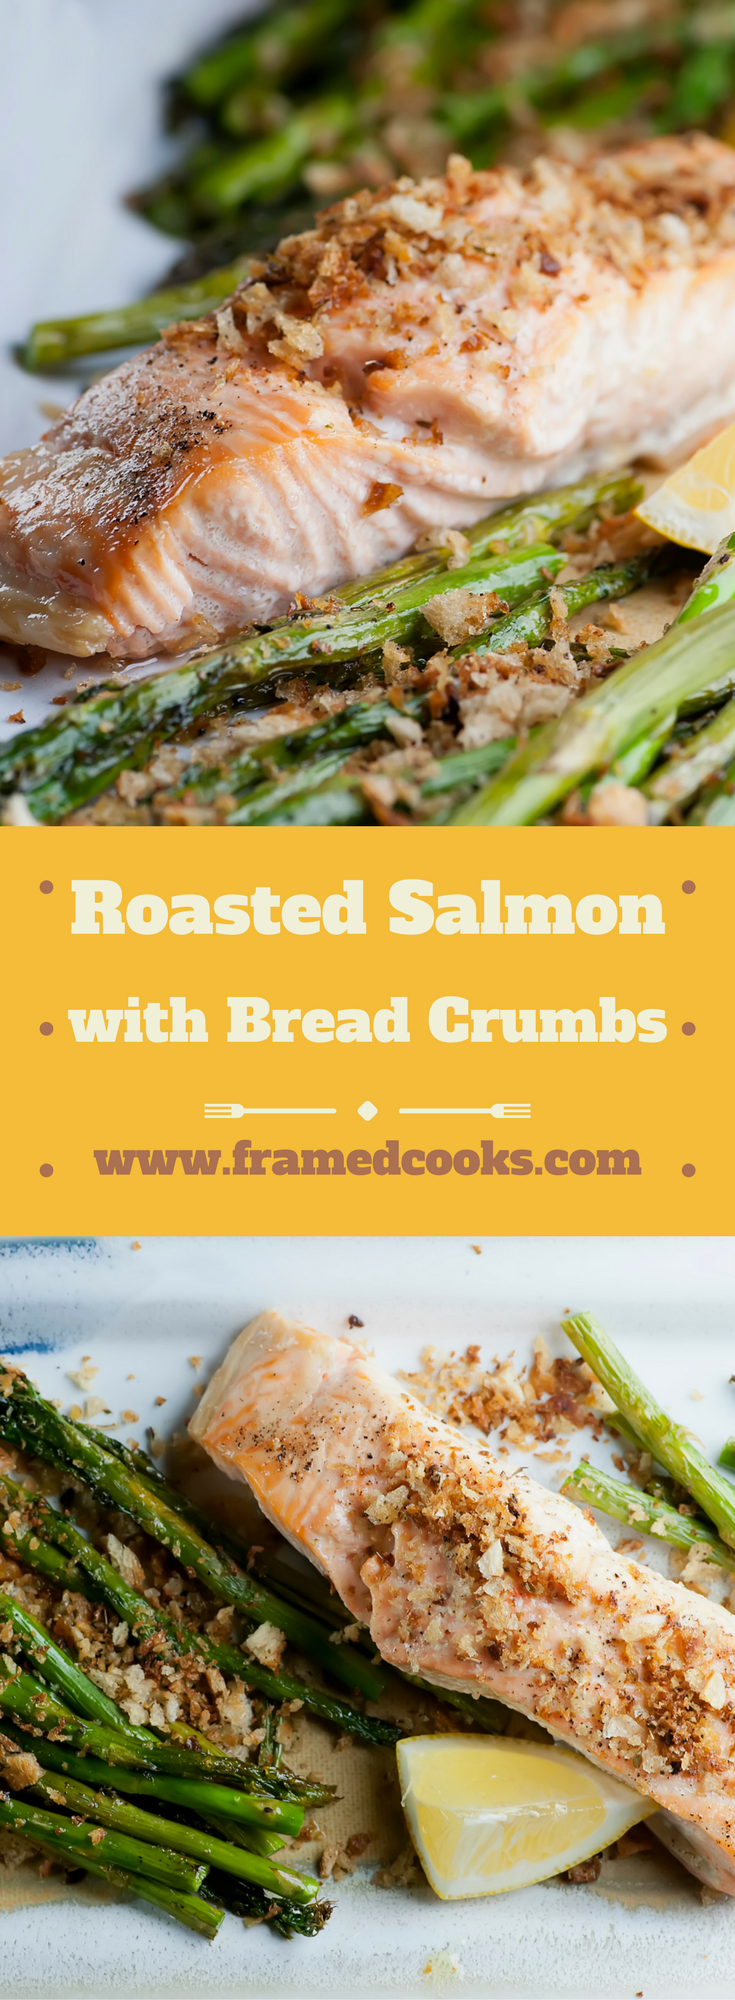 This easy recipe for salmon with toasted bread crumbs and asparagus cooks up in no time all in one pan for a delicious healthy supper!